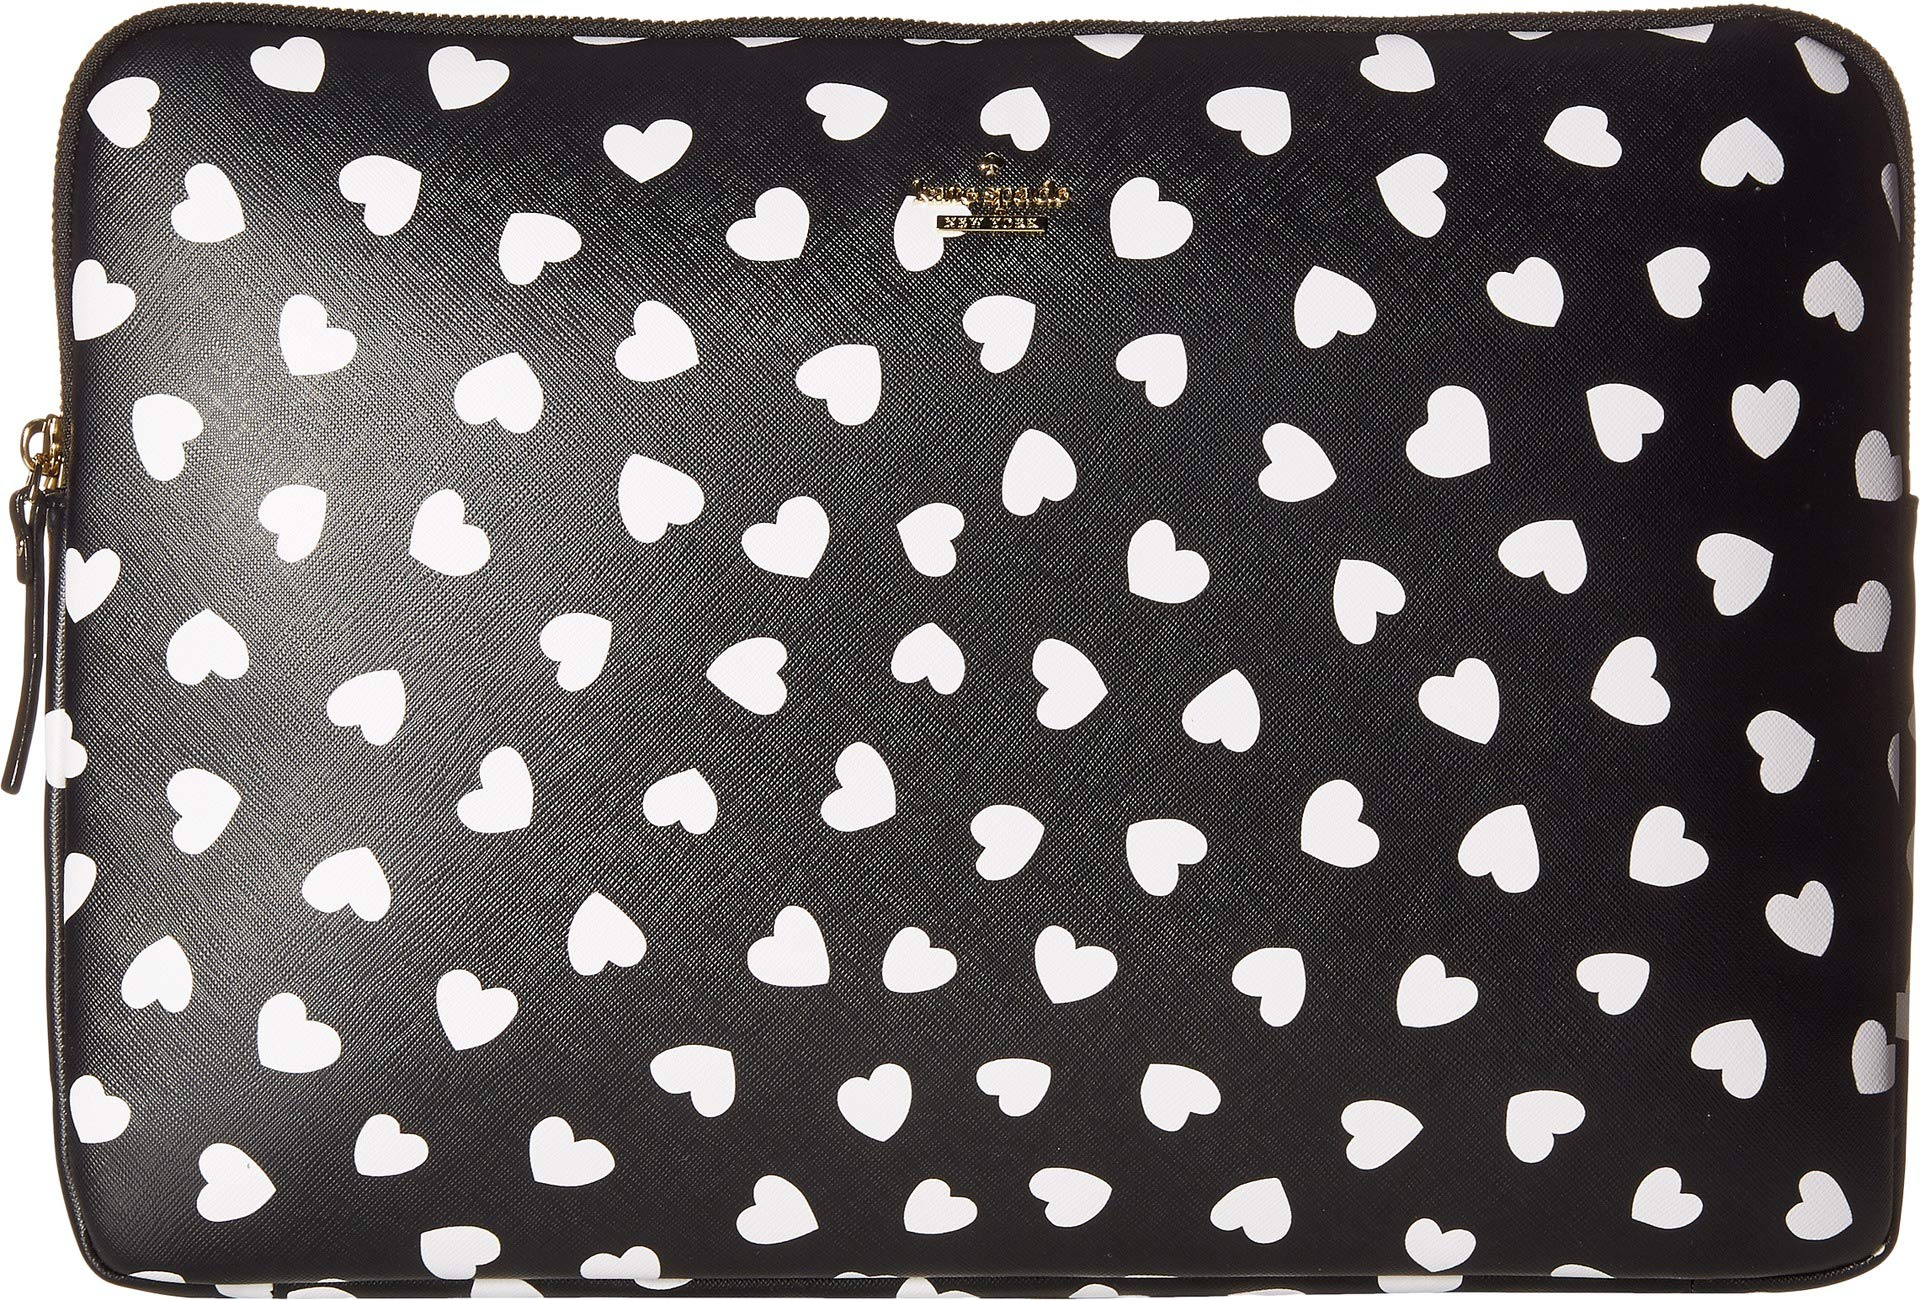 Kate Spade New York Heartbeat Universal Laptop Sleeve, Black/Cream, One Size by Kate Spade New York (Image #1)